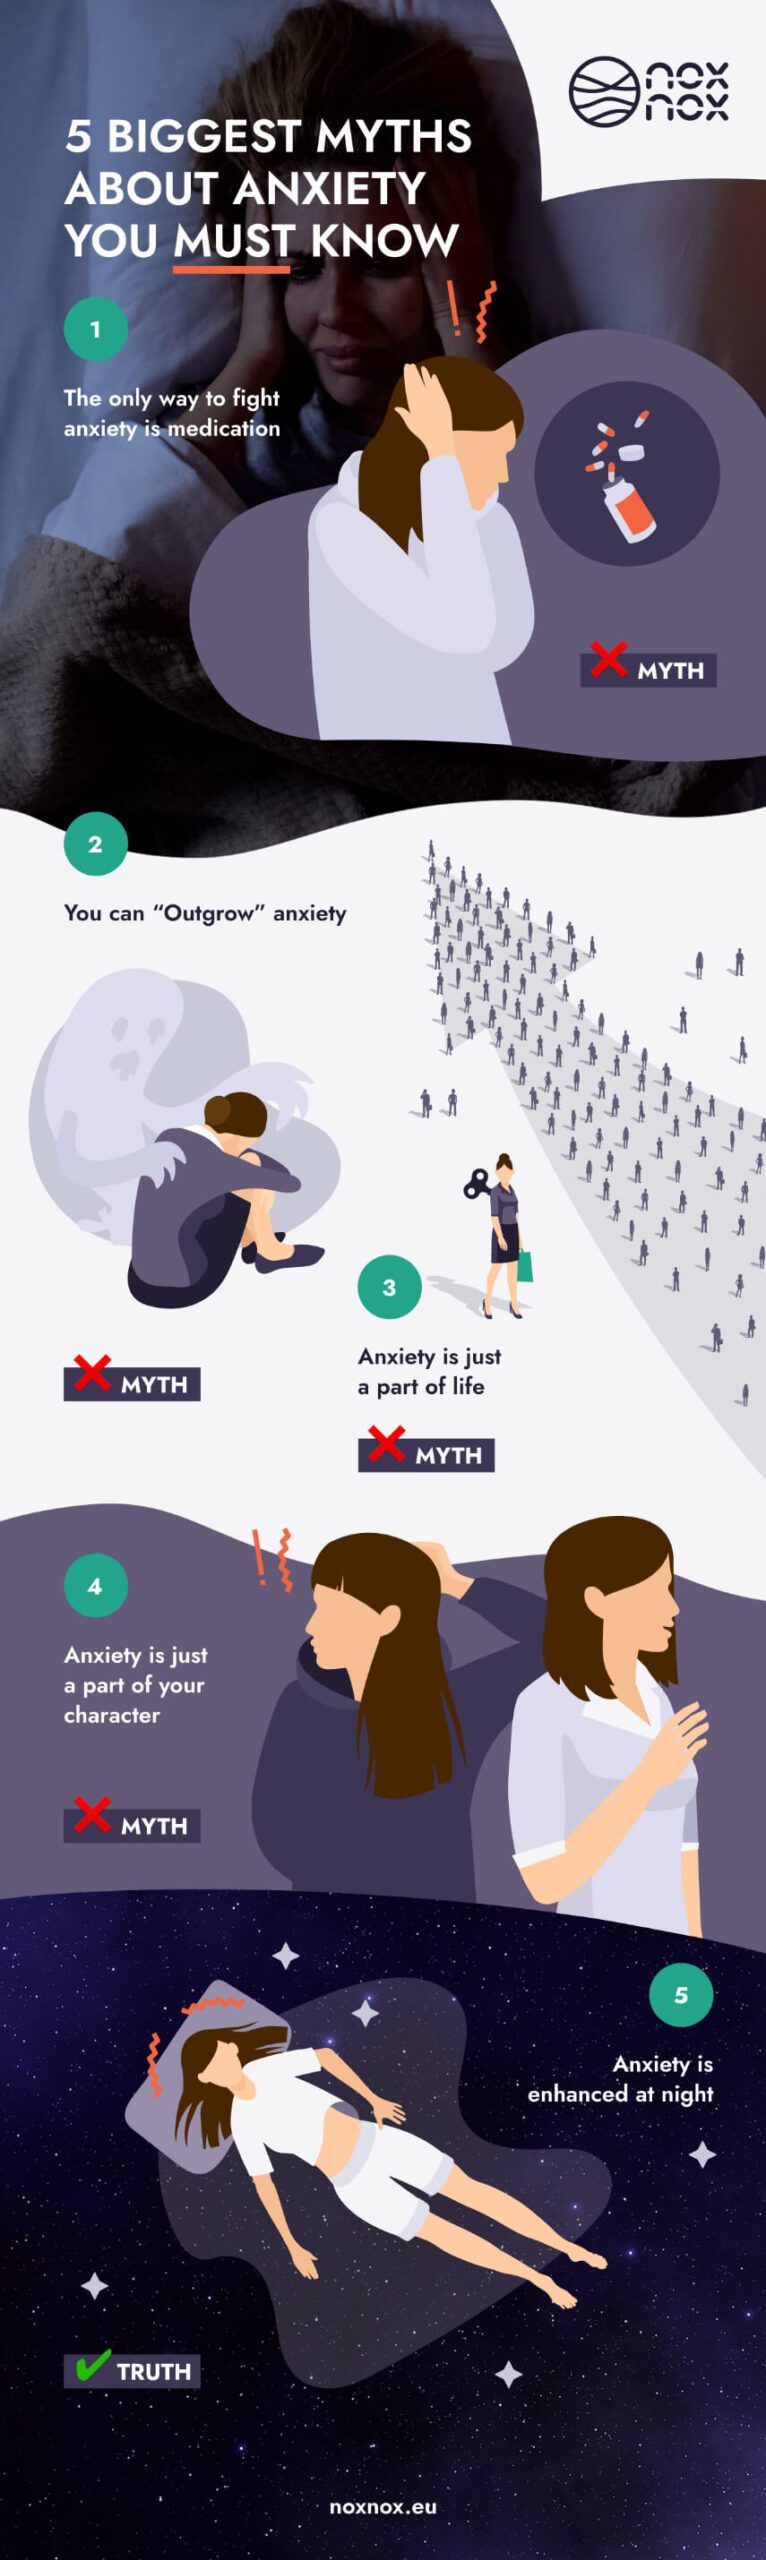 NoxNox 5 Biggest Myths About Anxiety Infographic